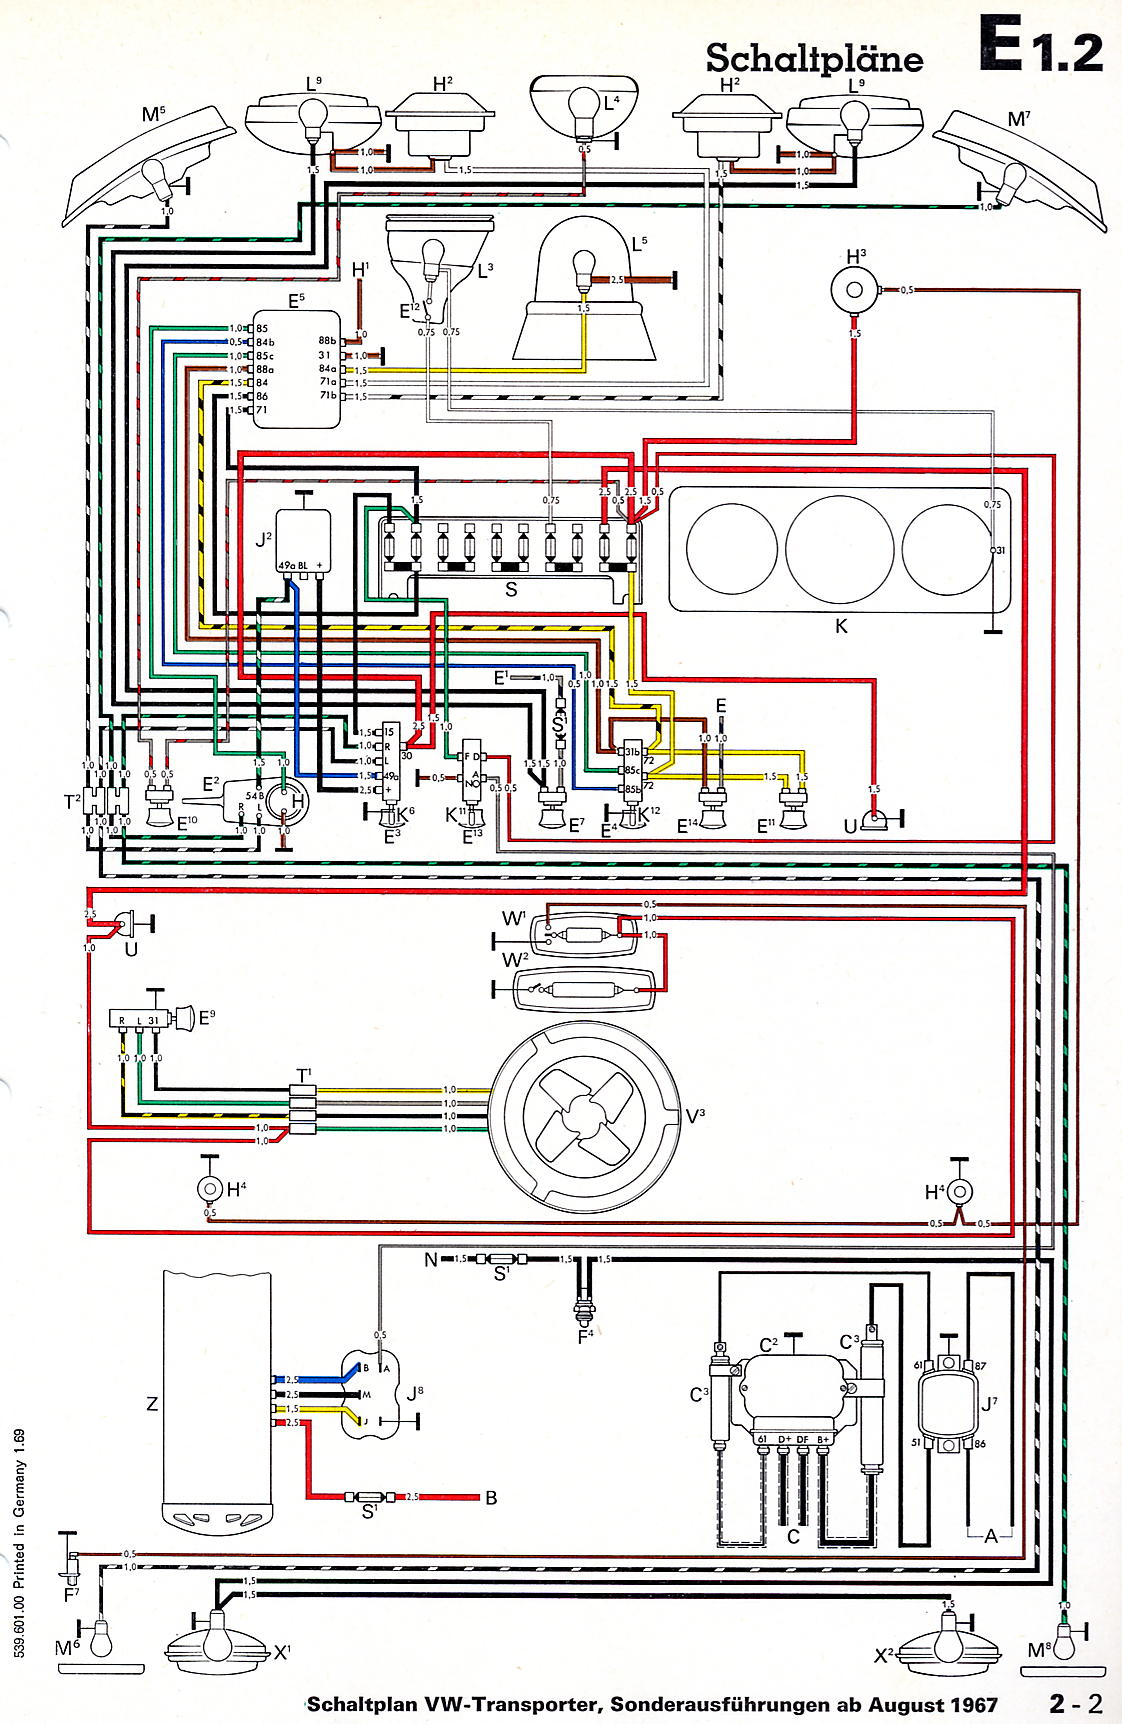 Transporter_from_August_1967_aditional_items vw wiring diagrams vw t4 wiring diagram pdf at gsmx.co